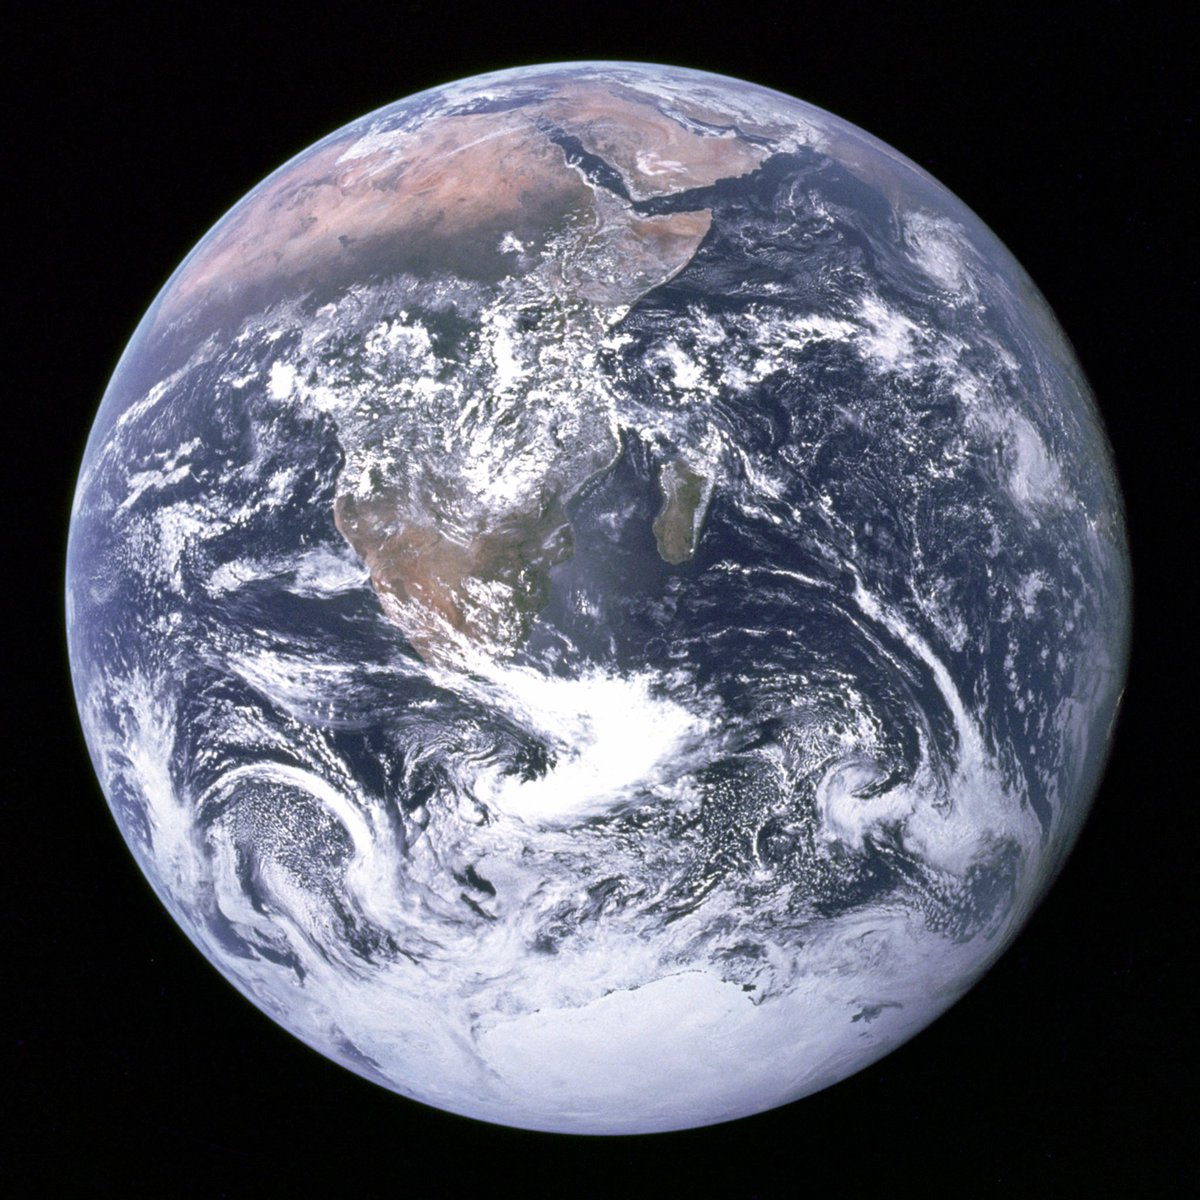 The Blue Marble, one of the most widely distributed images in history! #CulturesWays https://t.co/jEXhY69YIh https://t.co/wFTd0jJTig